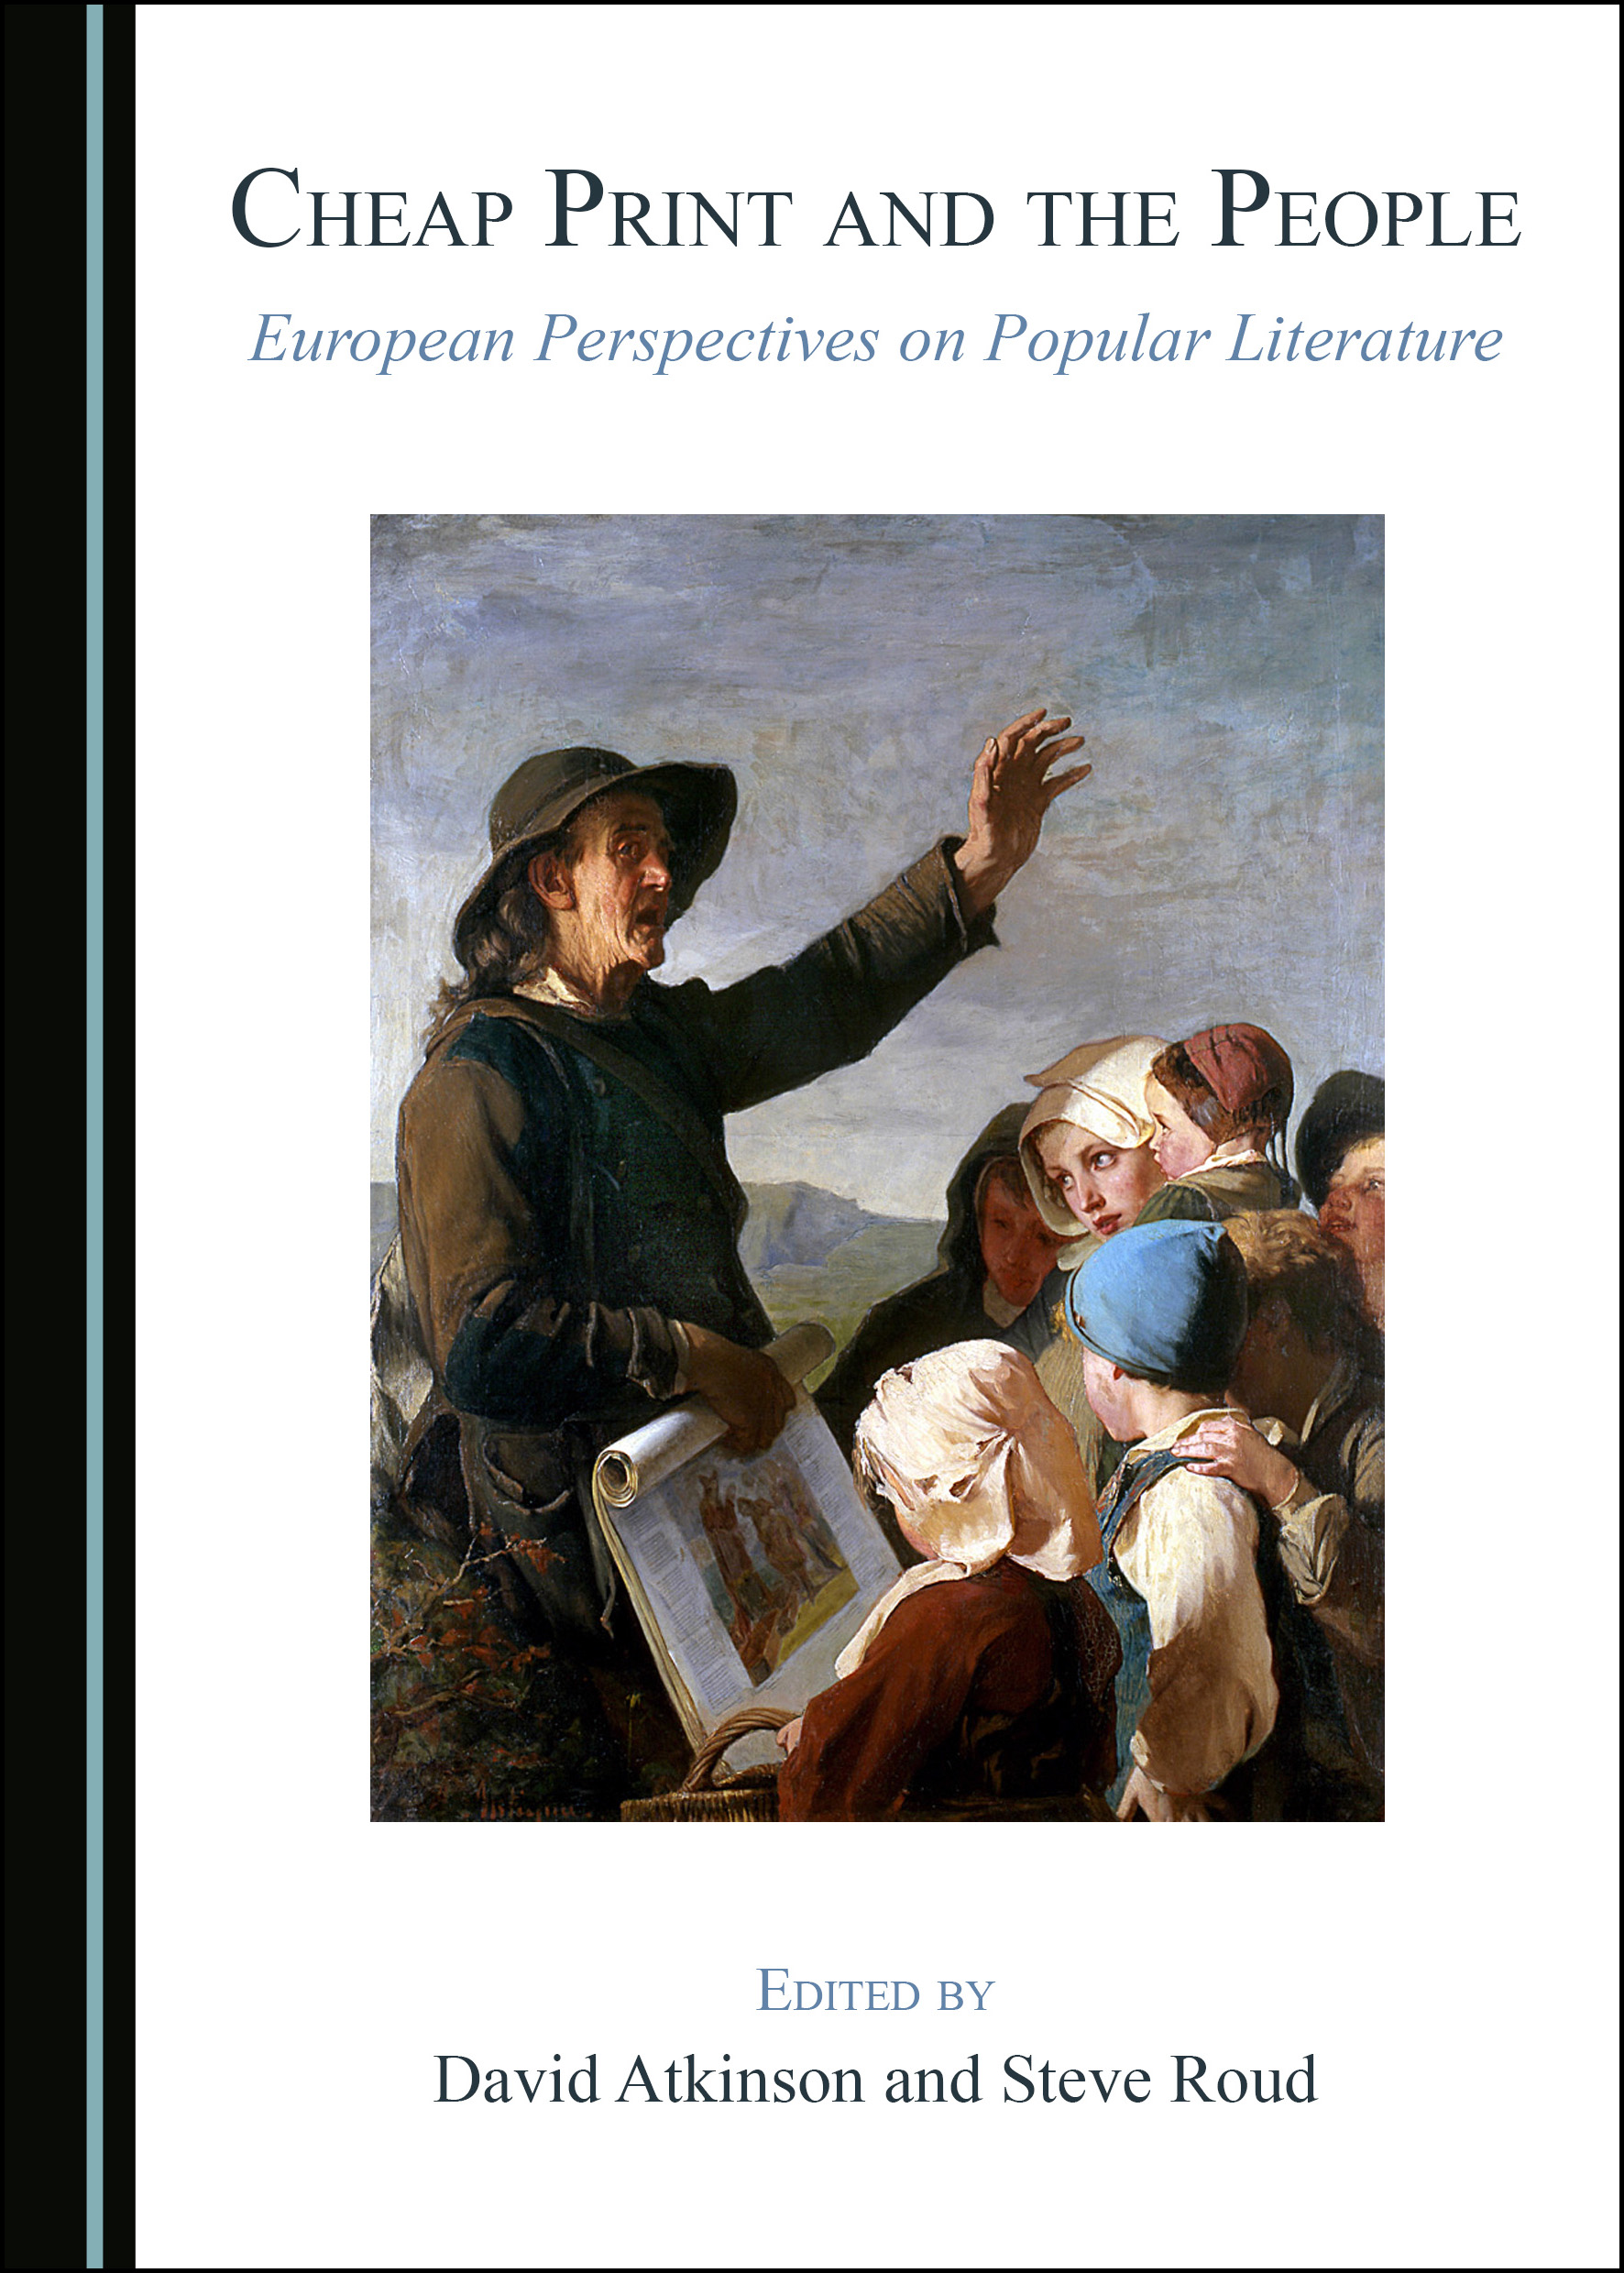 Cheap Print and the People: European Perspectives on Popular Literature